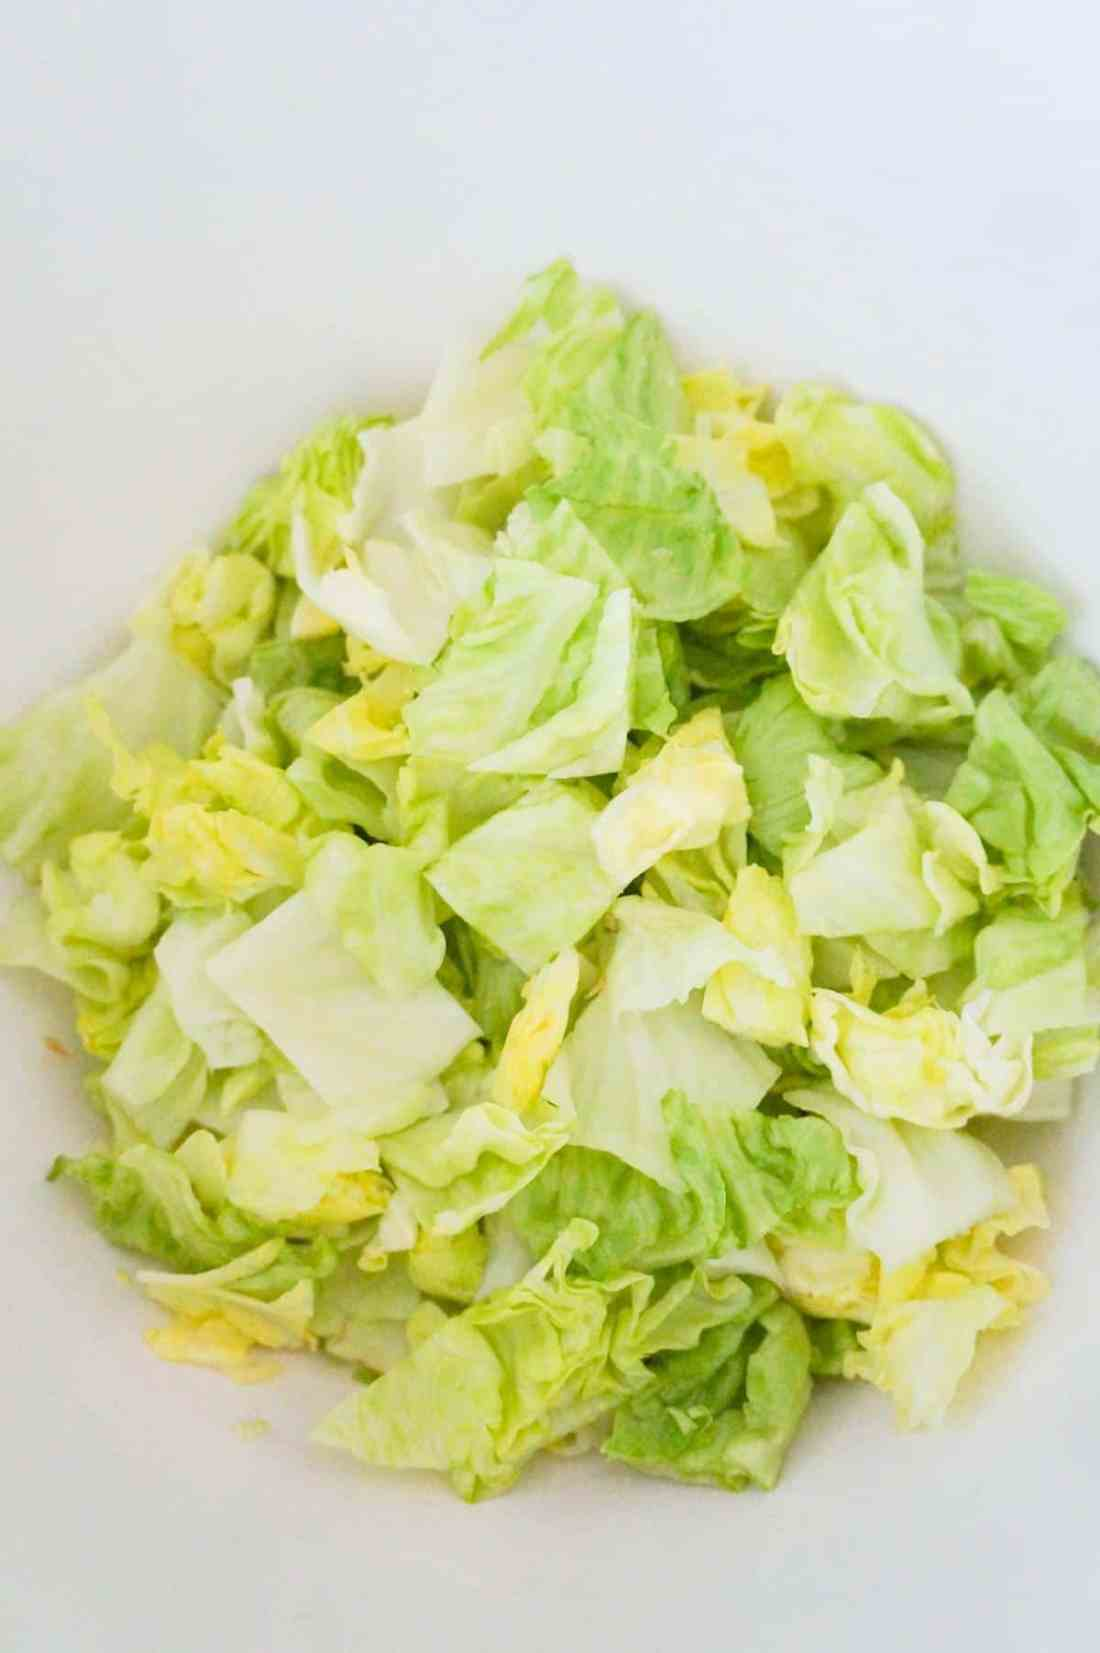 chopped iceberg lettuce in a mixing bowl